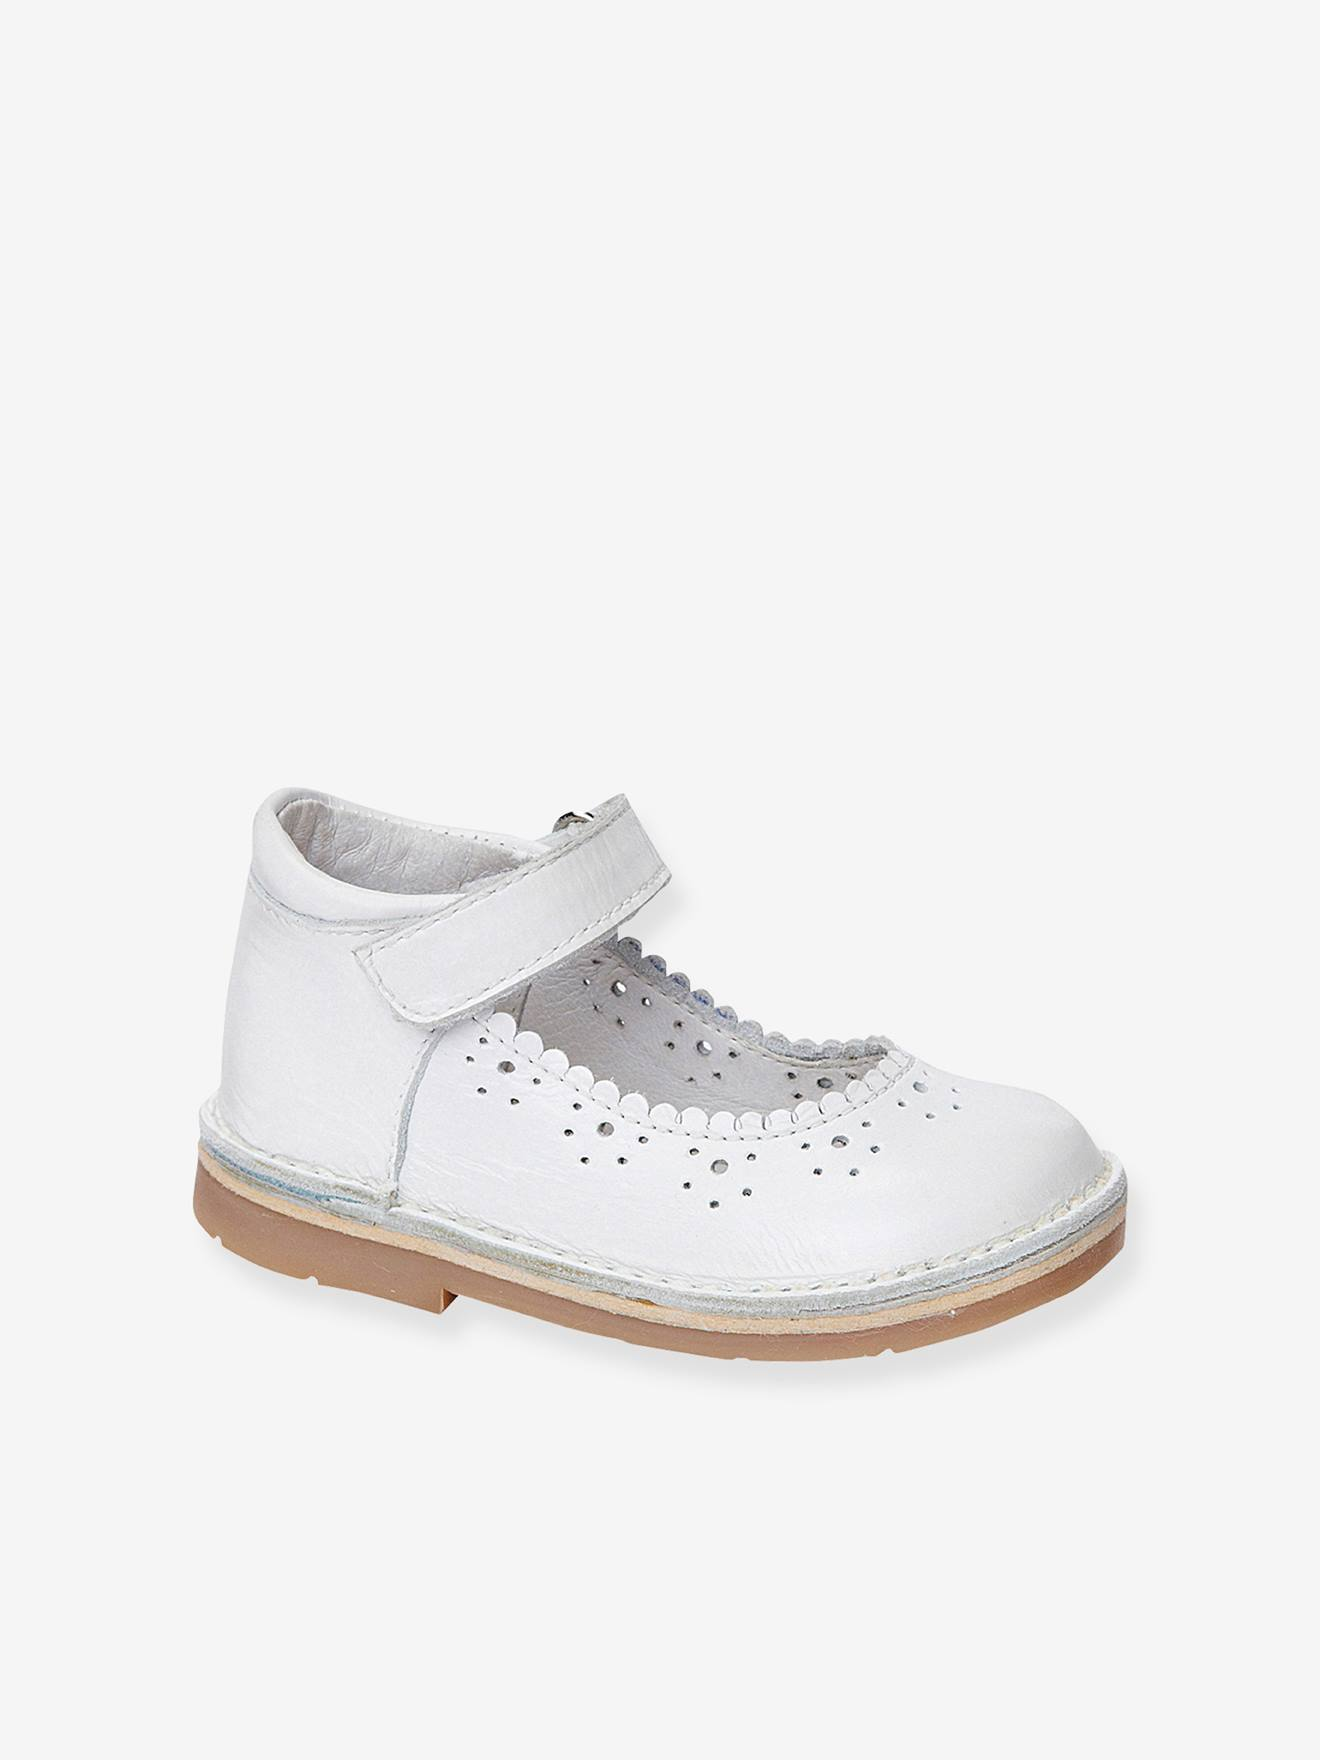 Baby Girls Leather Mary Jane Shoes With Touch N Close Tabs Shoes